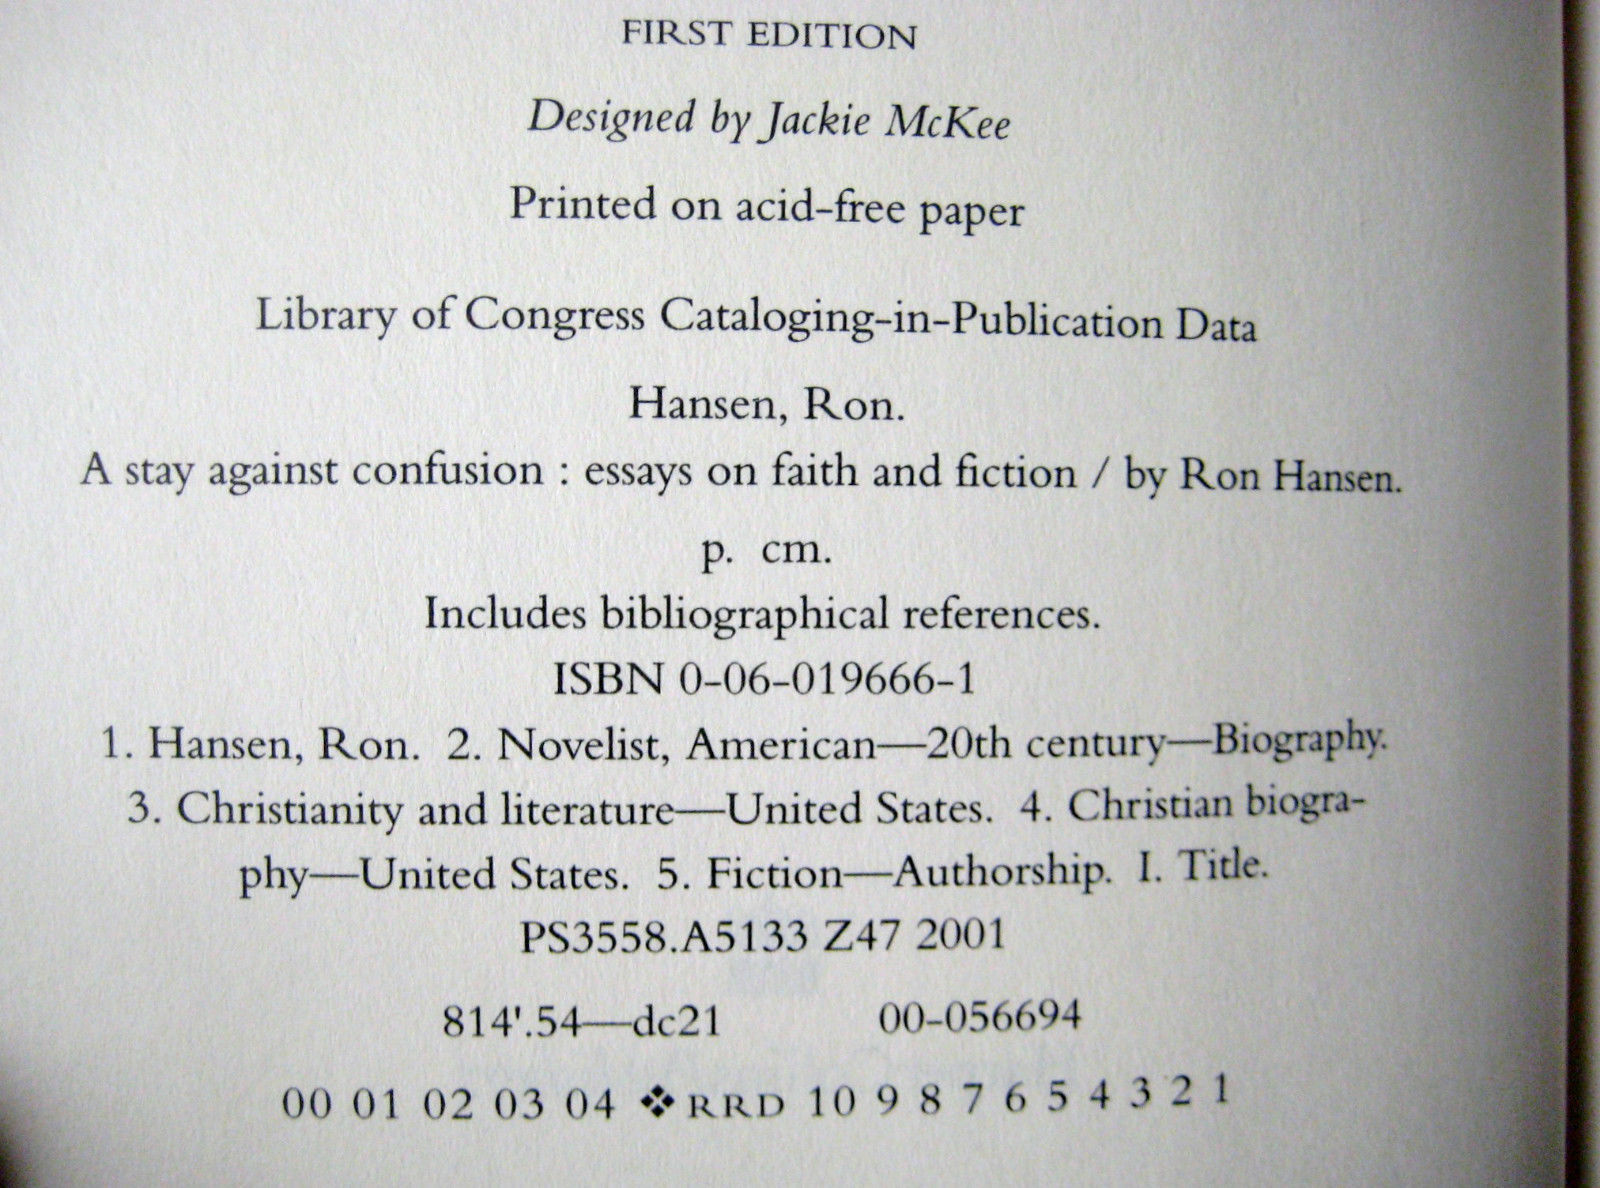 st edition a stay against confusion ron hansen essays faith  1st edition a stay against confusion ron hansen essays faith fiction first prt